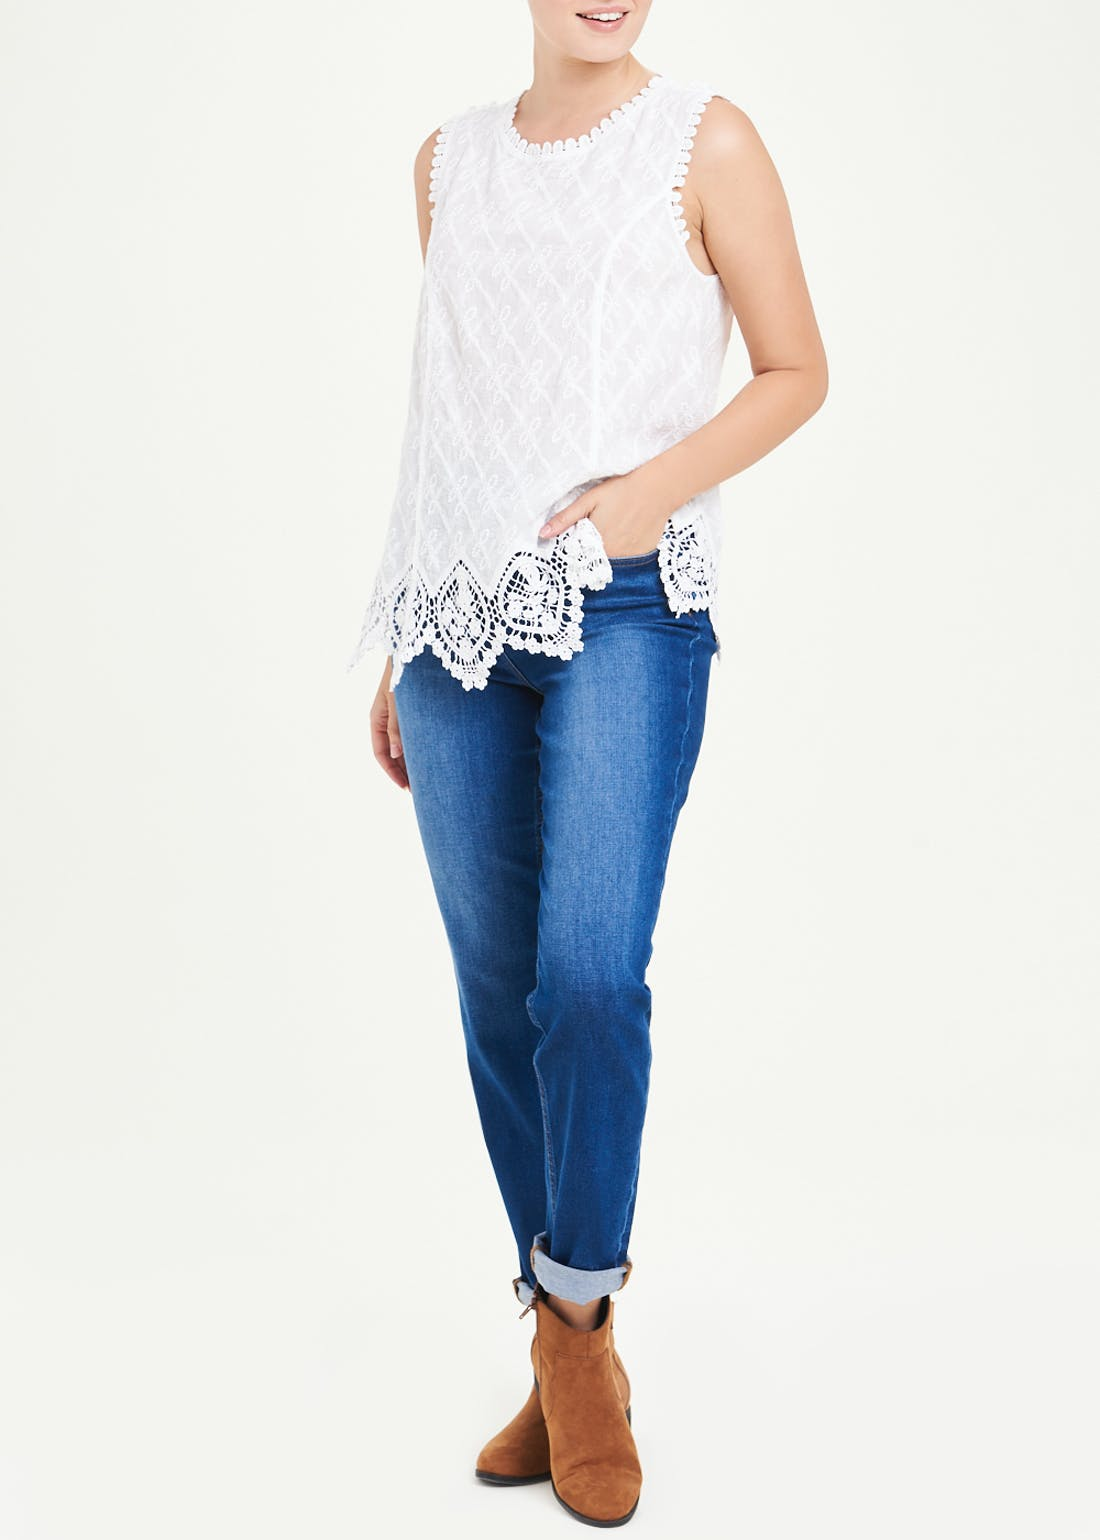 Falmer White Sleeveless Embroidered Lace Top